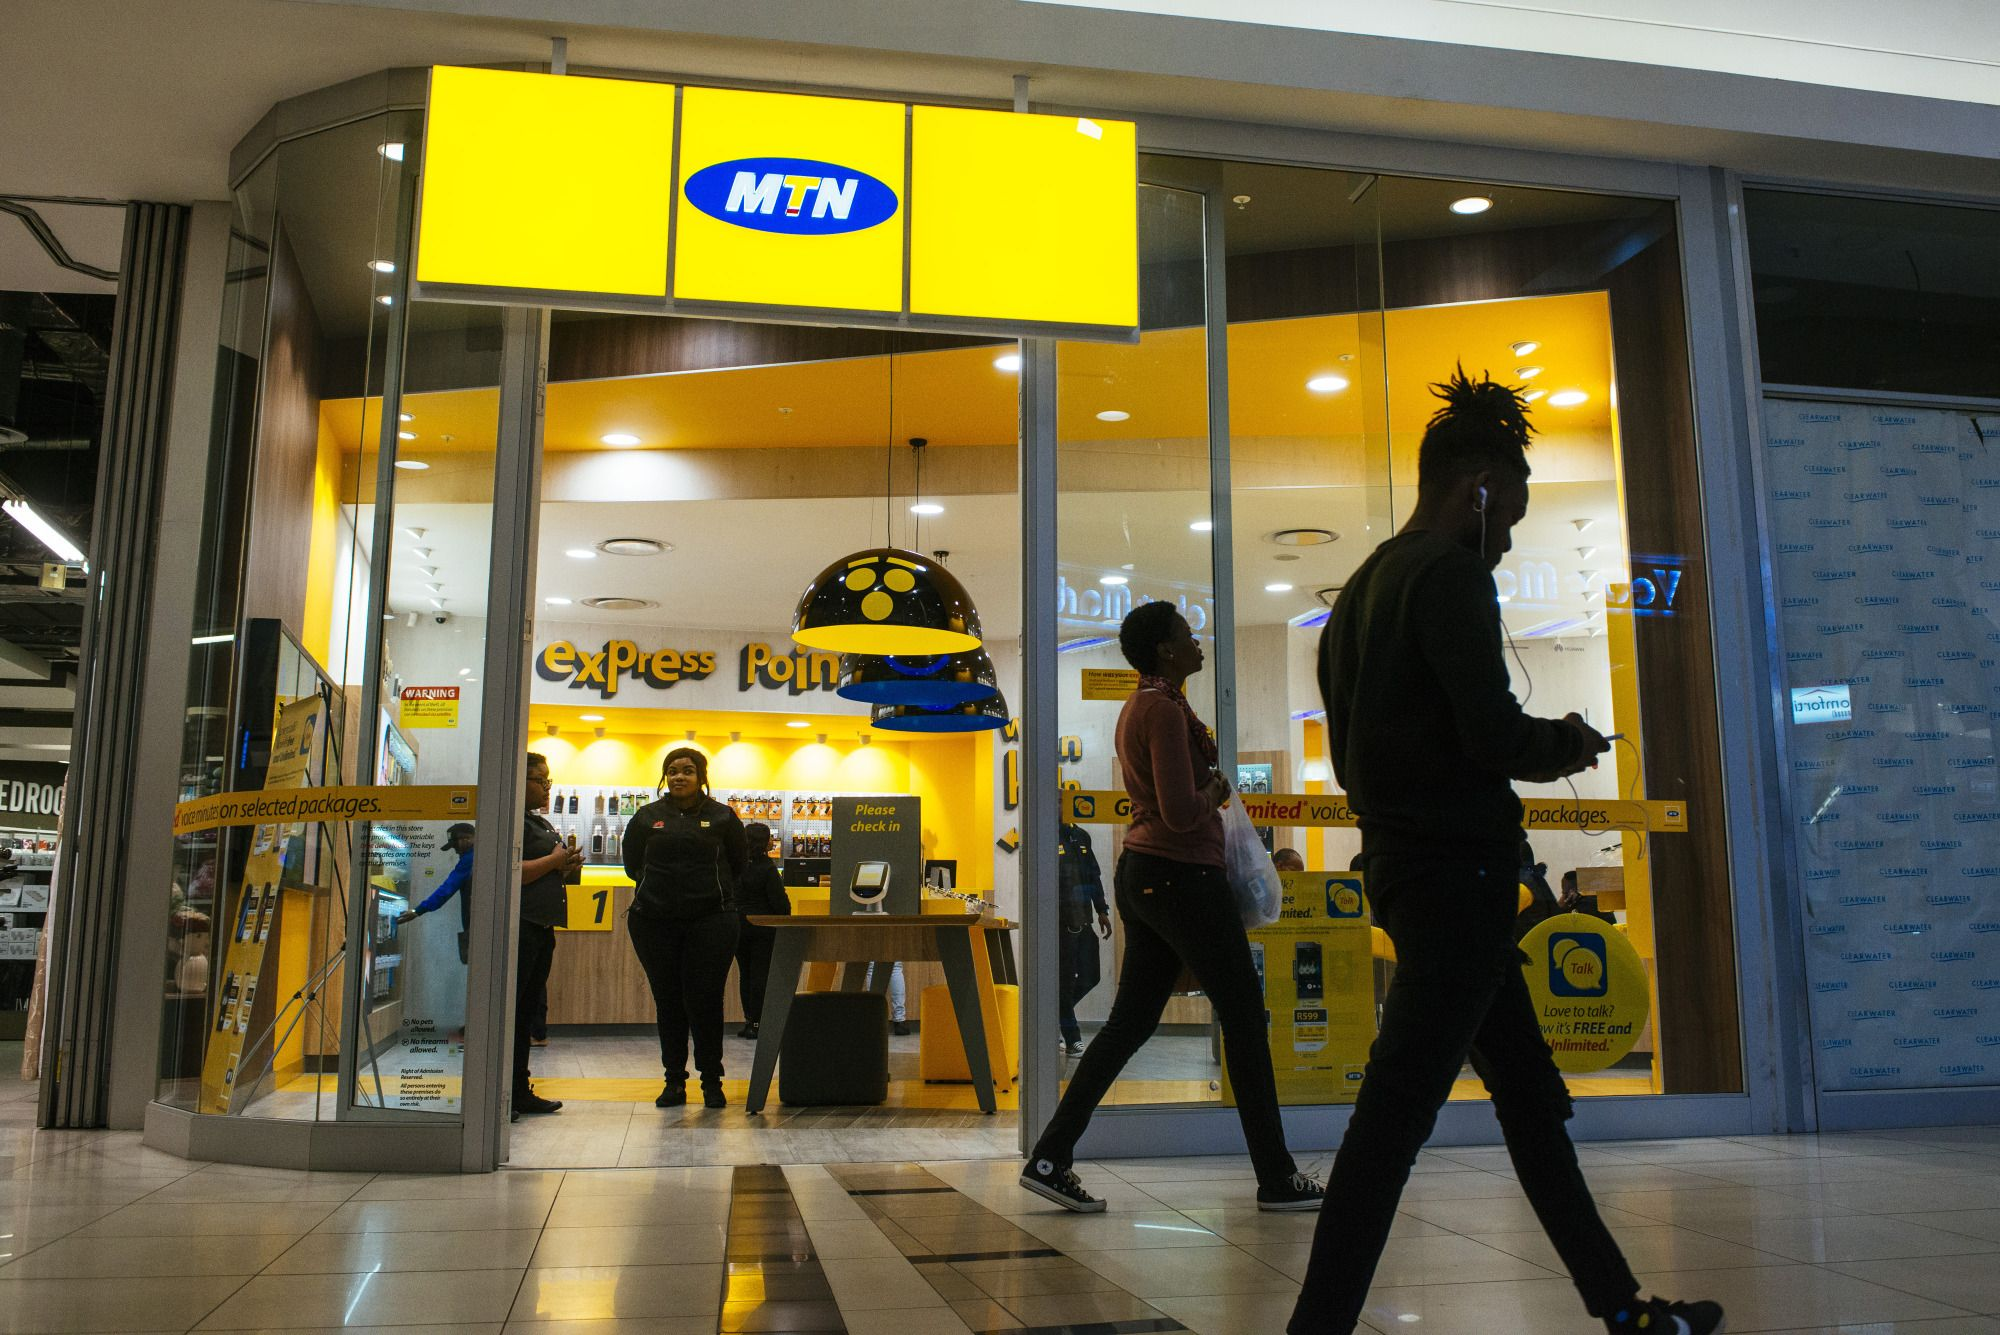 Update 3-South Africa's MTN to Exit Middle East to Focus on Africa